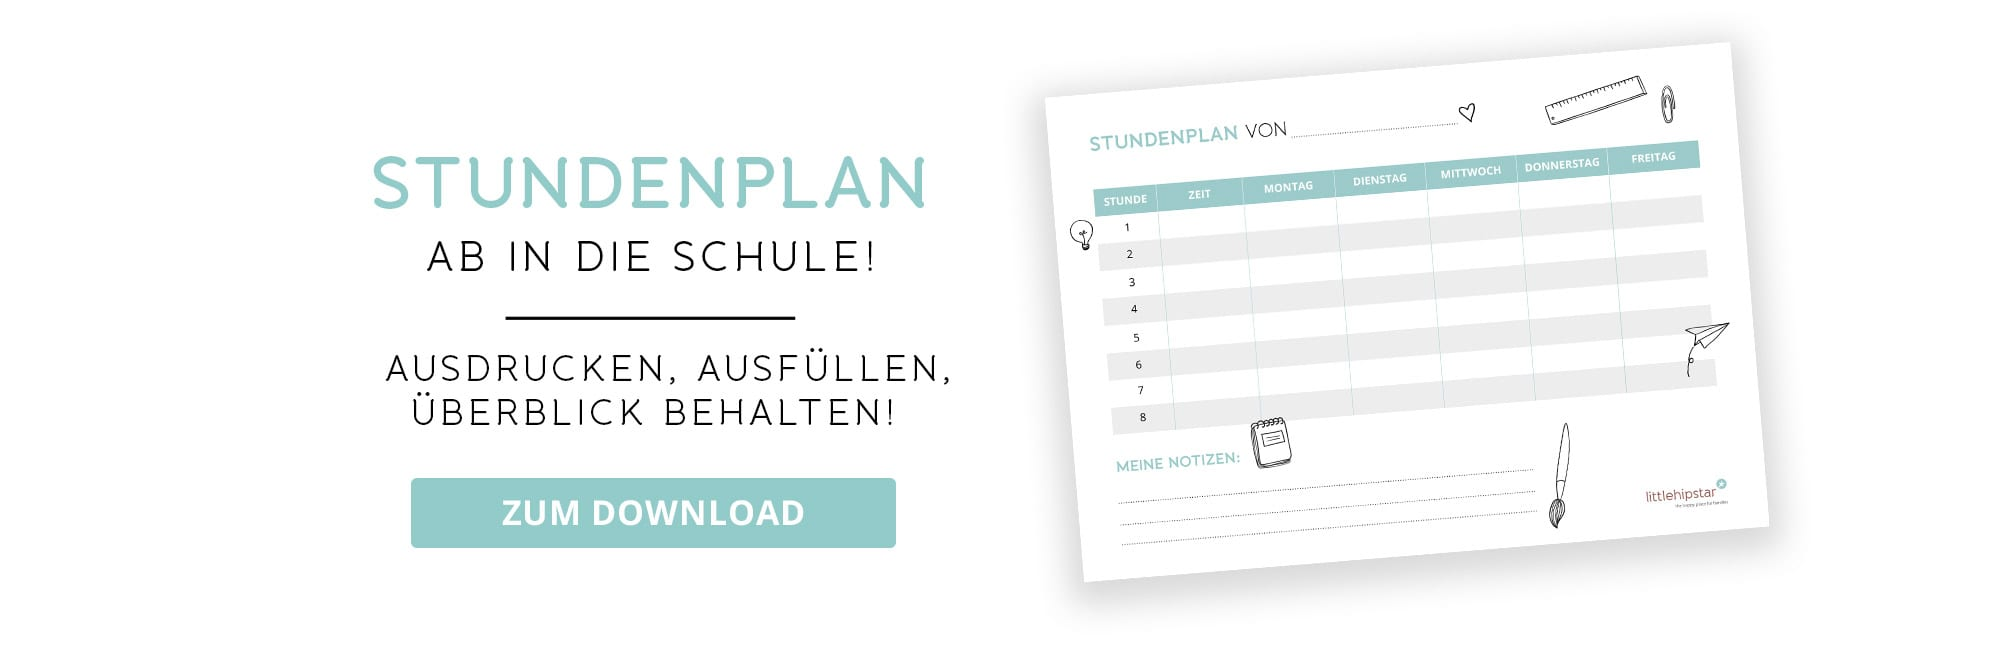 Stundenplan zum Downloaden